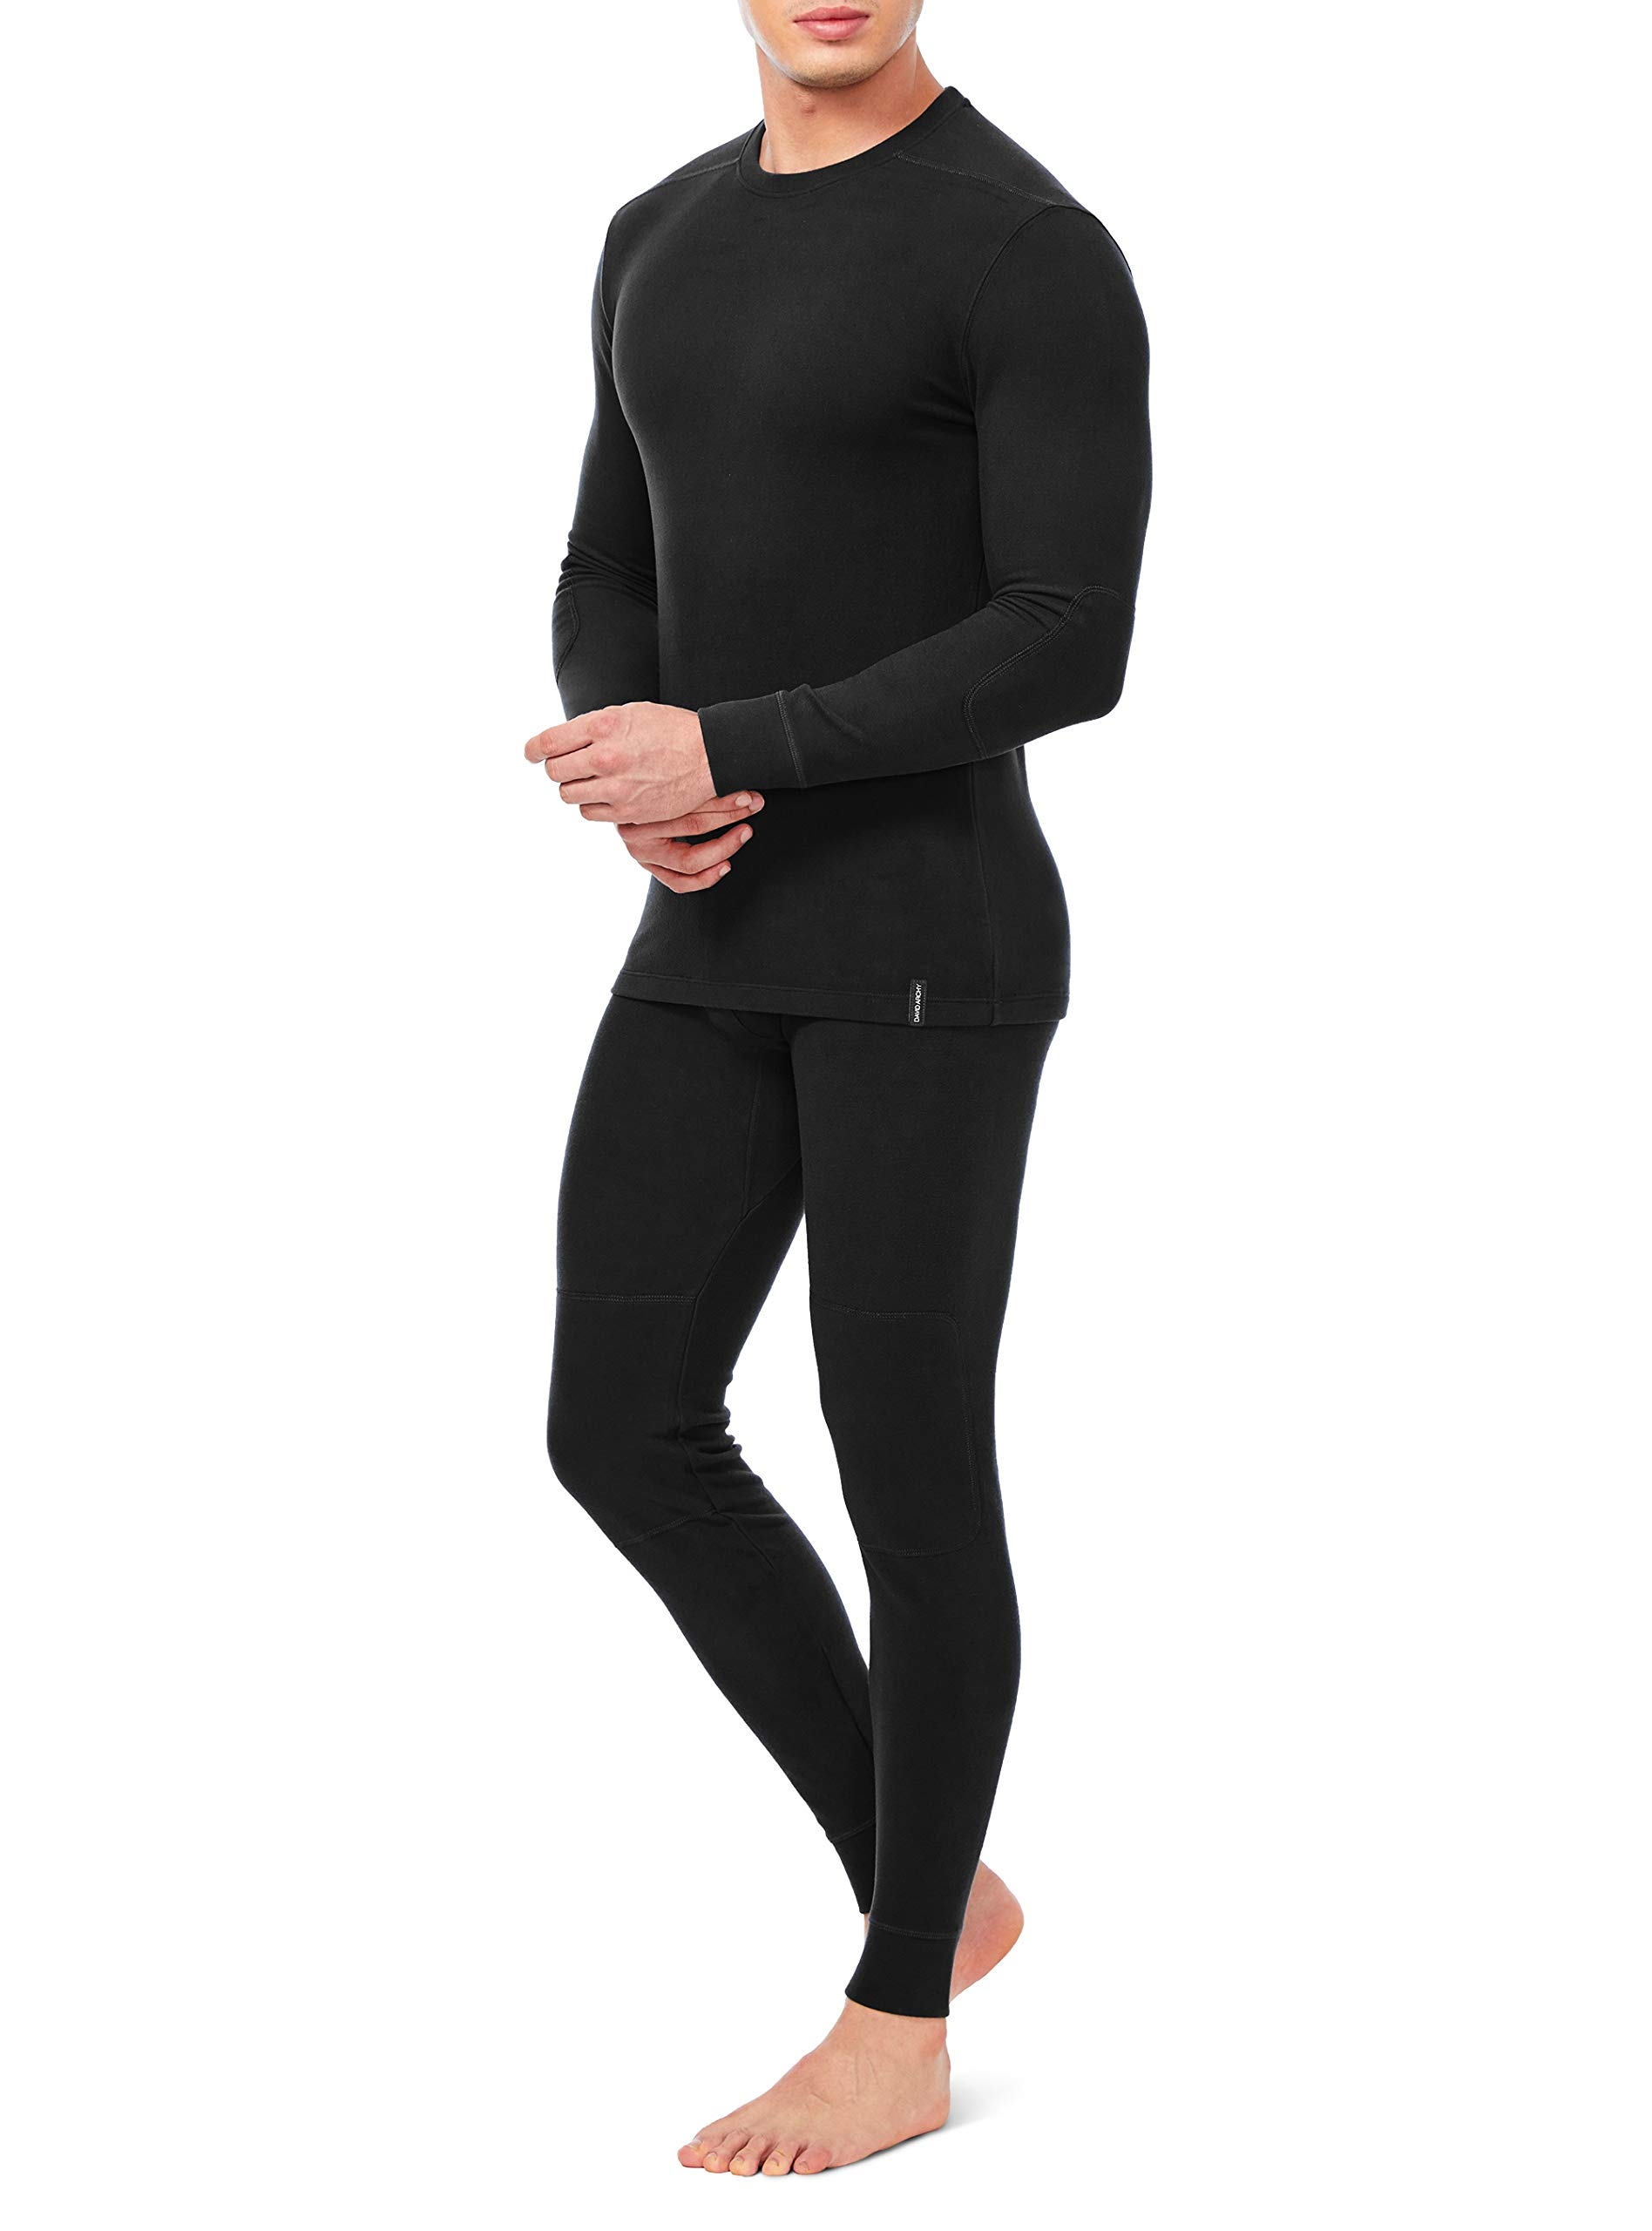 David Archy Men's Ultra Soft Winter Warm Base Layer Top & Bottom Fleece Lined Thermal Set Long John (M, Black) by David Archy